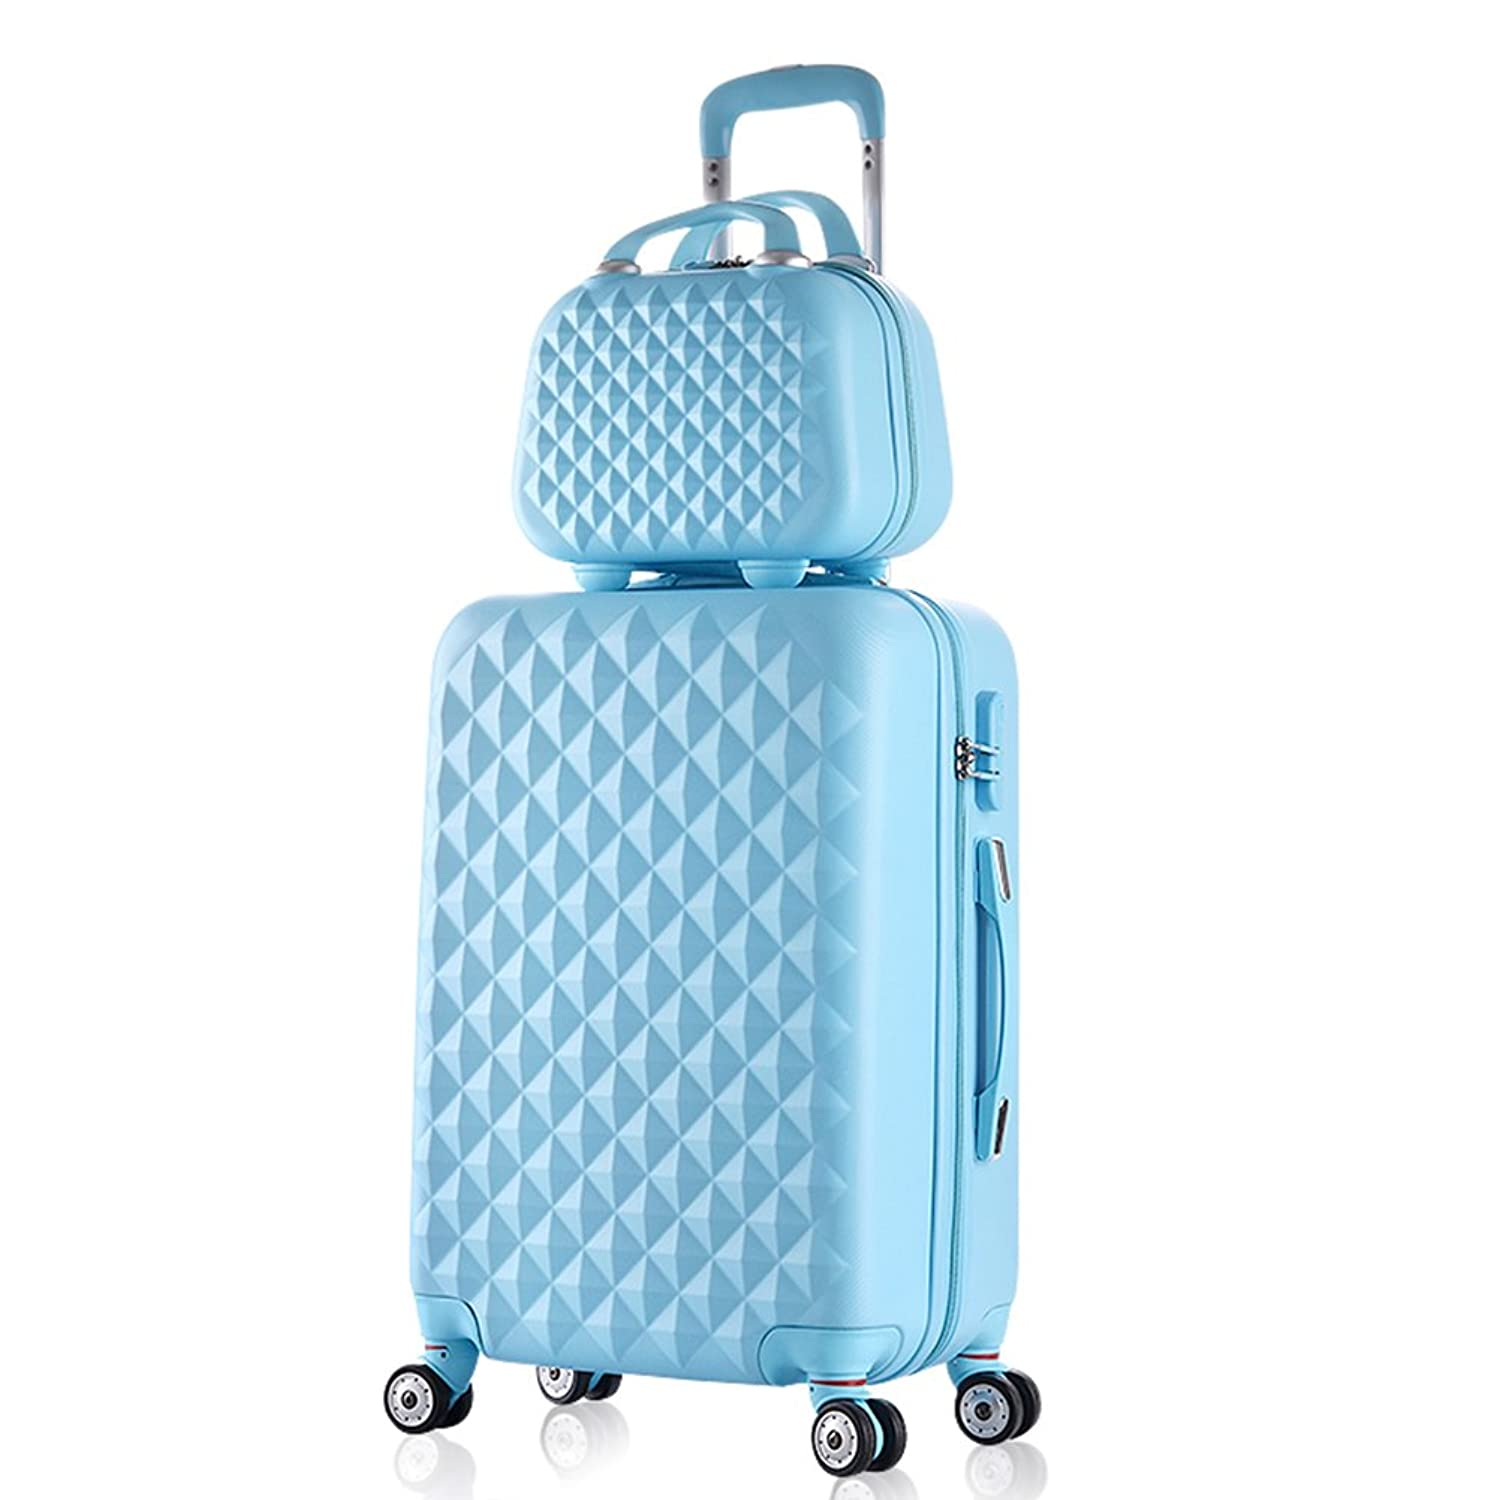 2 Piece Luggage Set Spinner Trolley Suitcase Hard Shell Carry On Bag